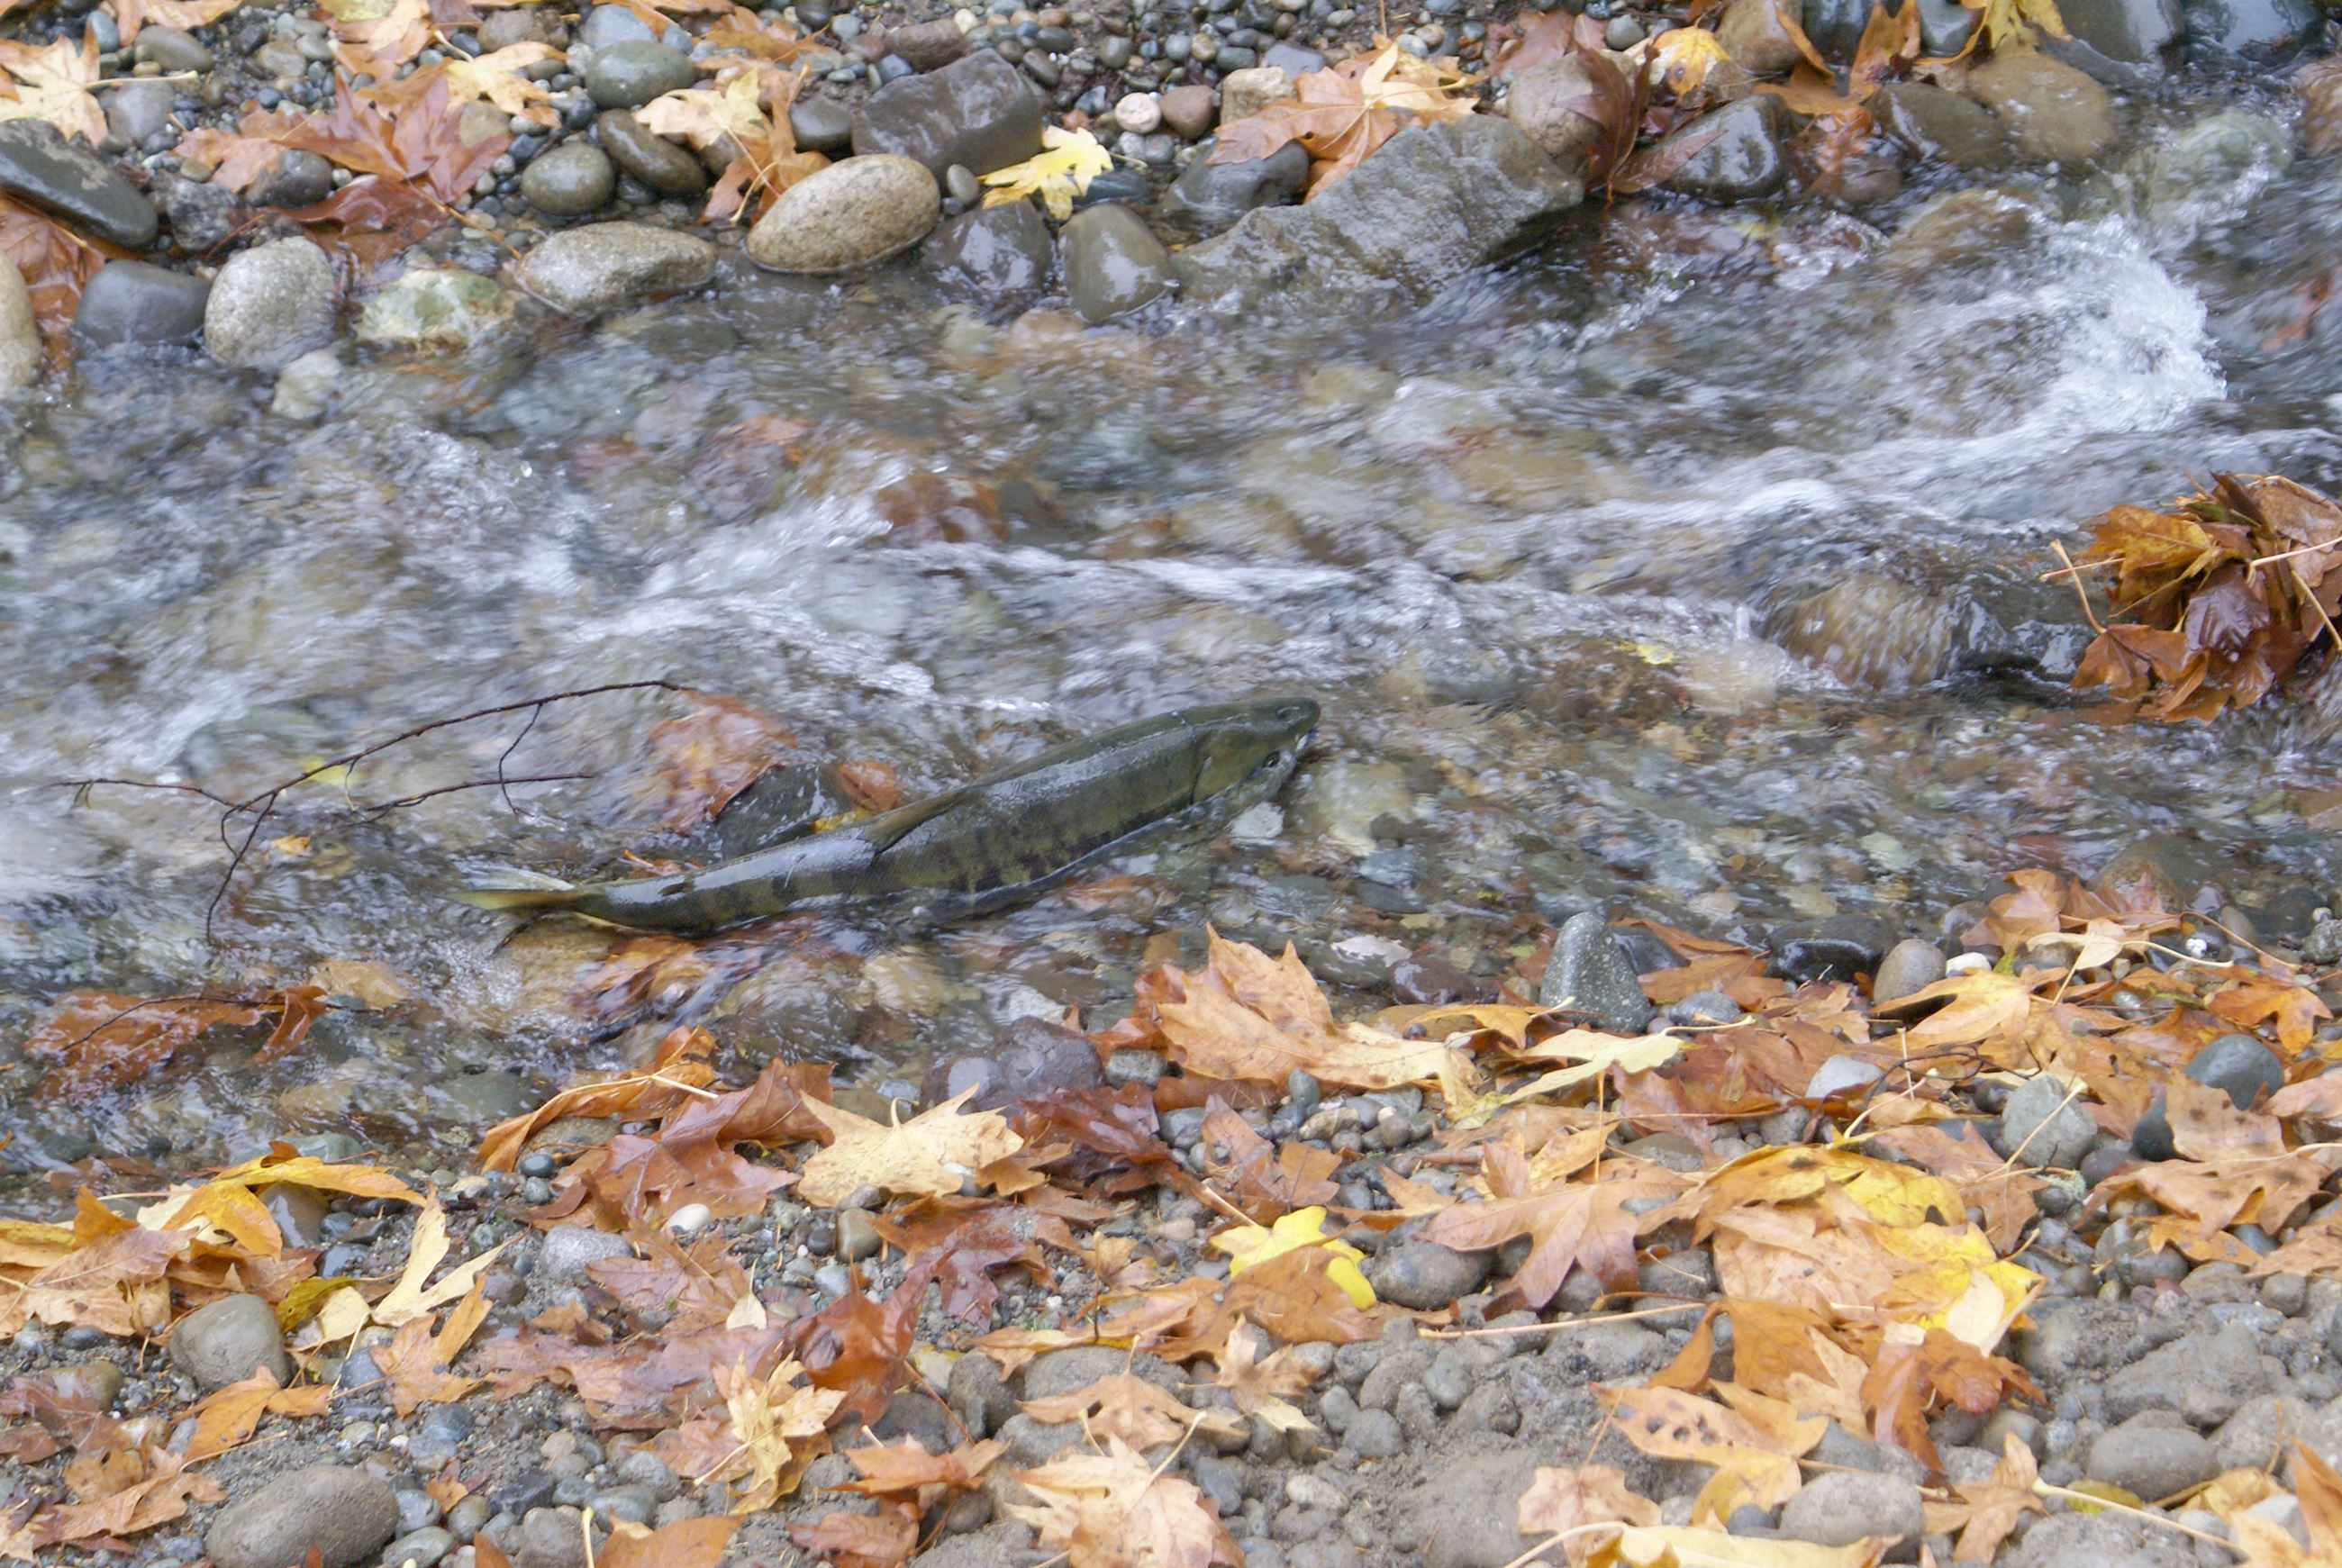 Salmon in belfair fall creek (002)